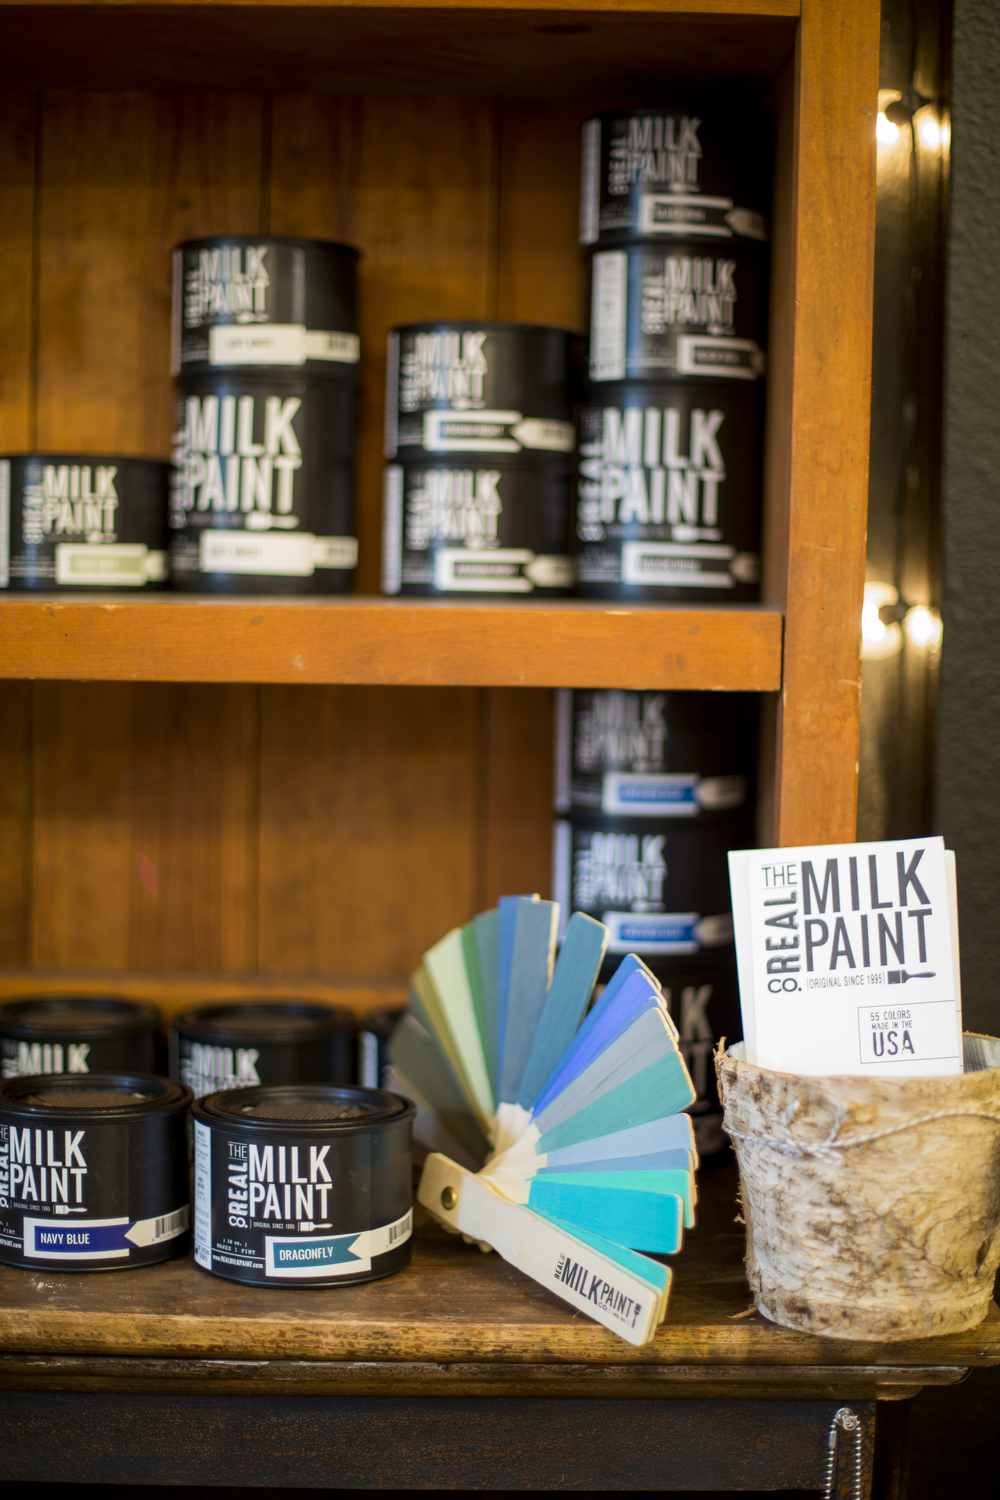 The other paint line that I also carry is the Real Milk Paint Company.  This line has a huge selection of colors and a couple different options for finishes such as their wax, hemp oil, and tung oil.